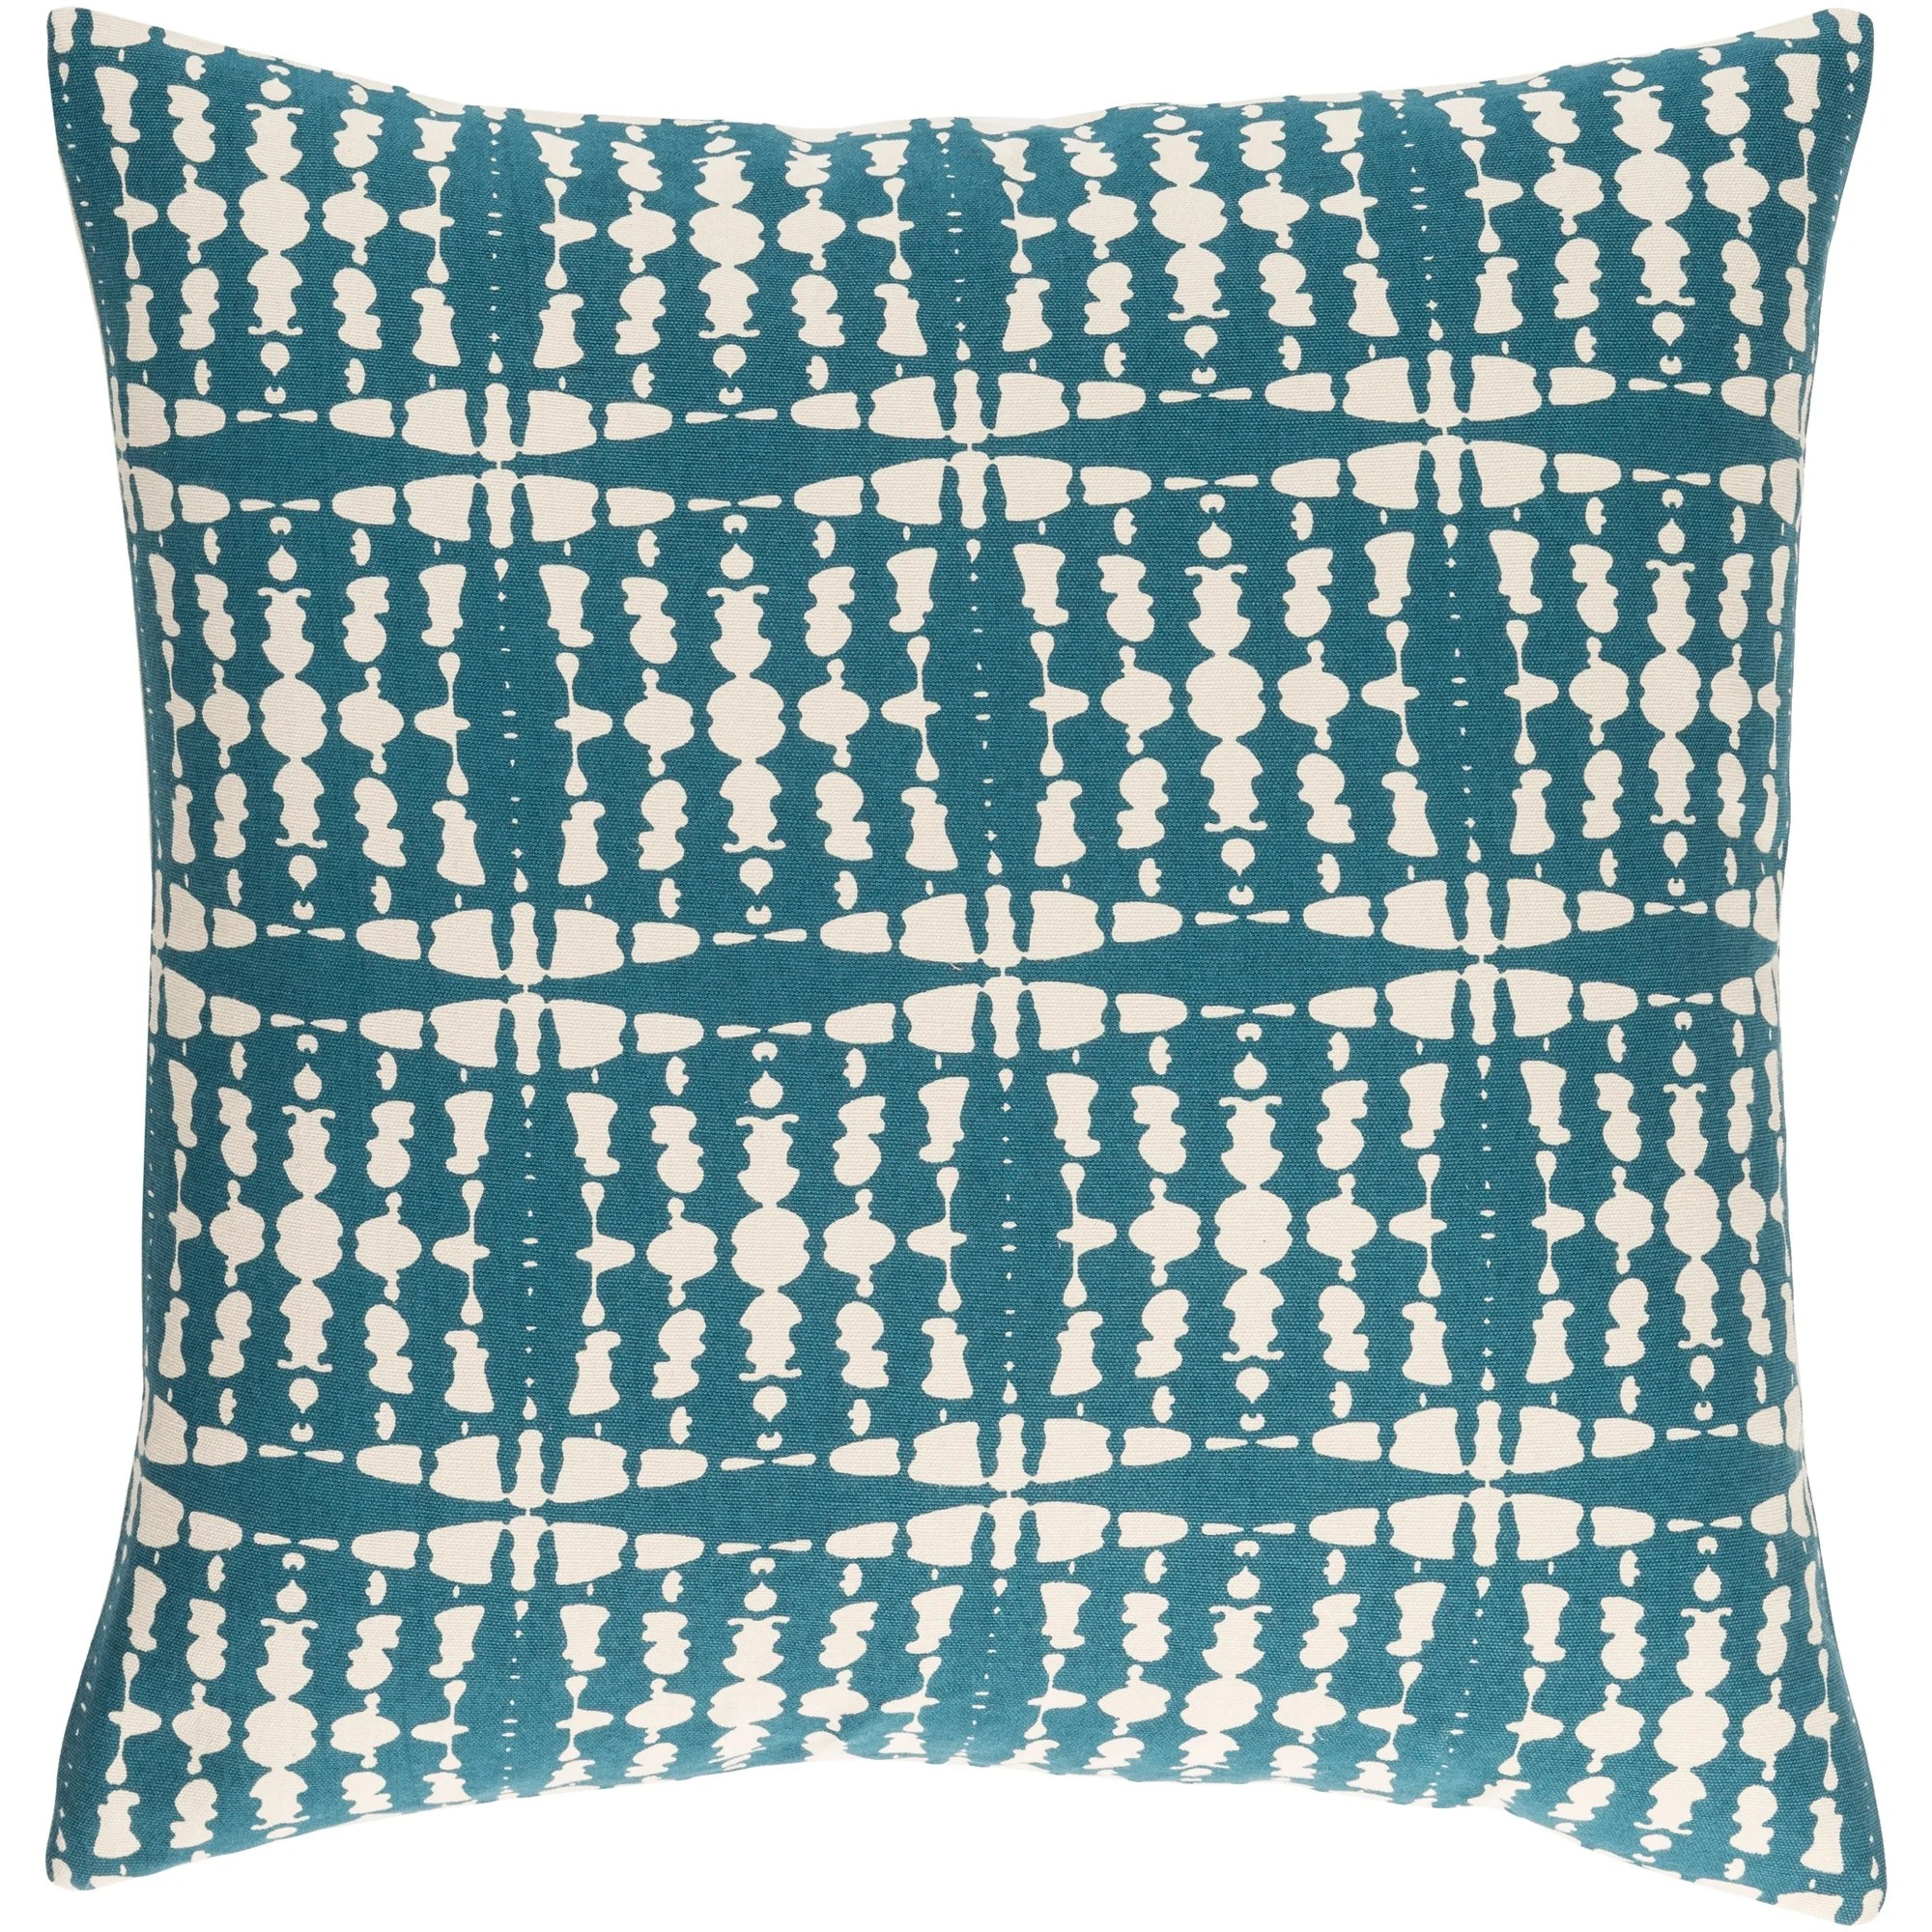 Decorative Staveley Teal Blue 22 Inch Throw Pillow Cover Overstock 23143737